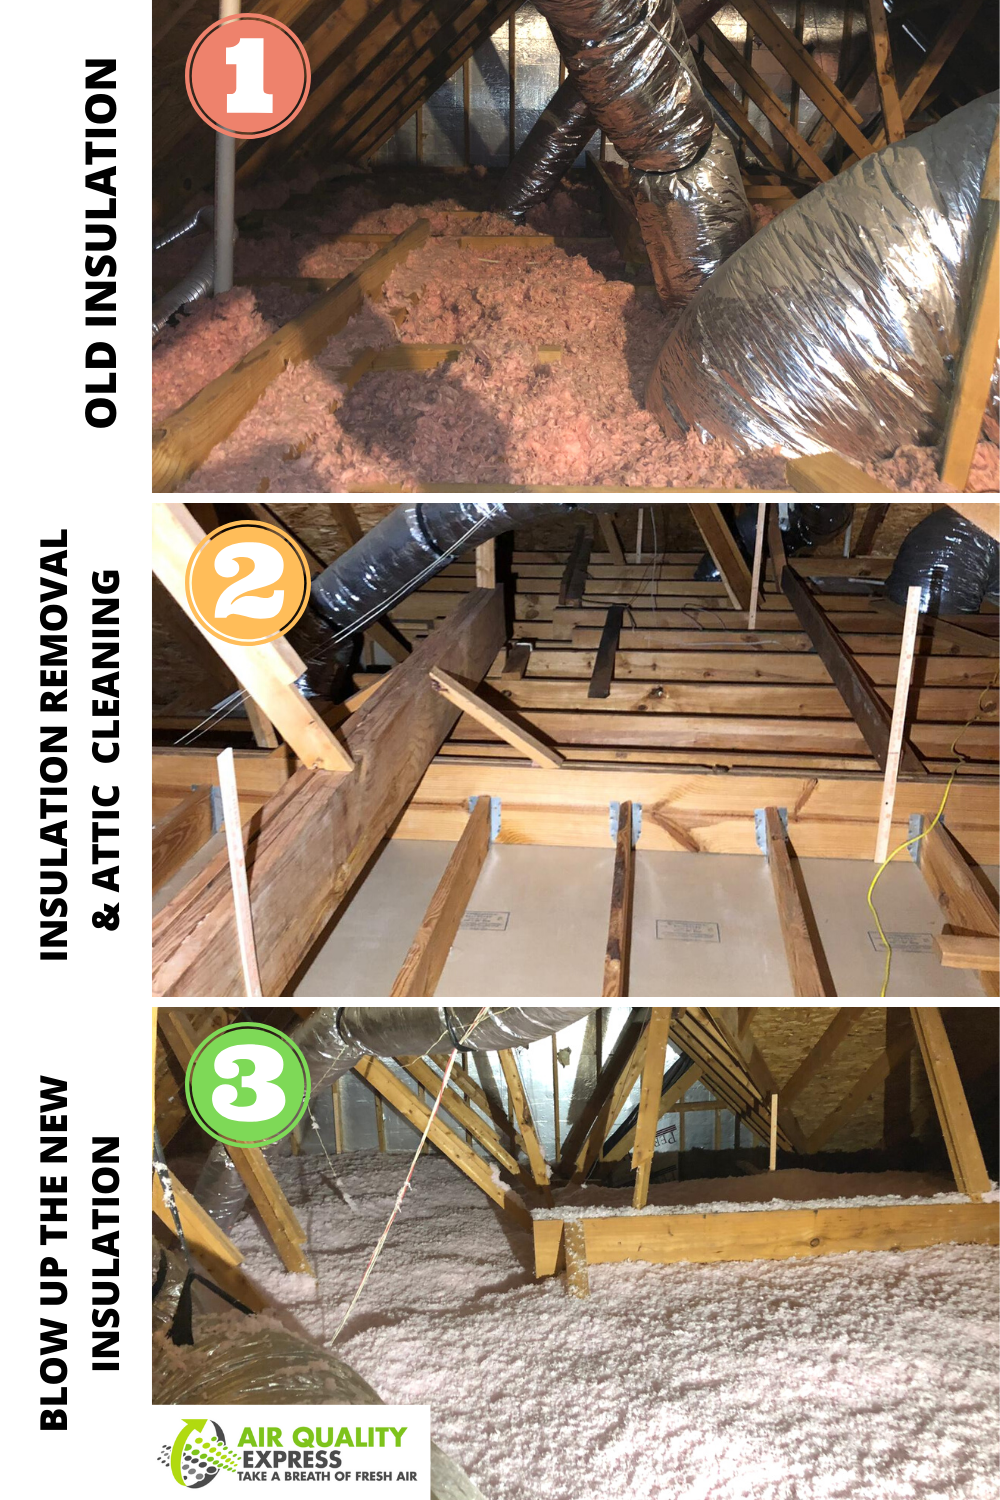 Attic Cleaning And Insulation In 2020 Attic Cleaning Attic Insulation